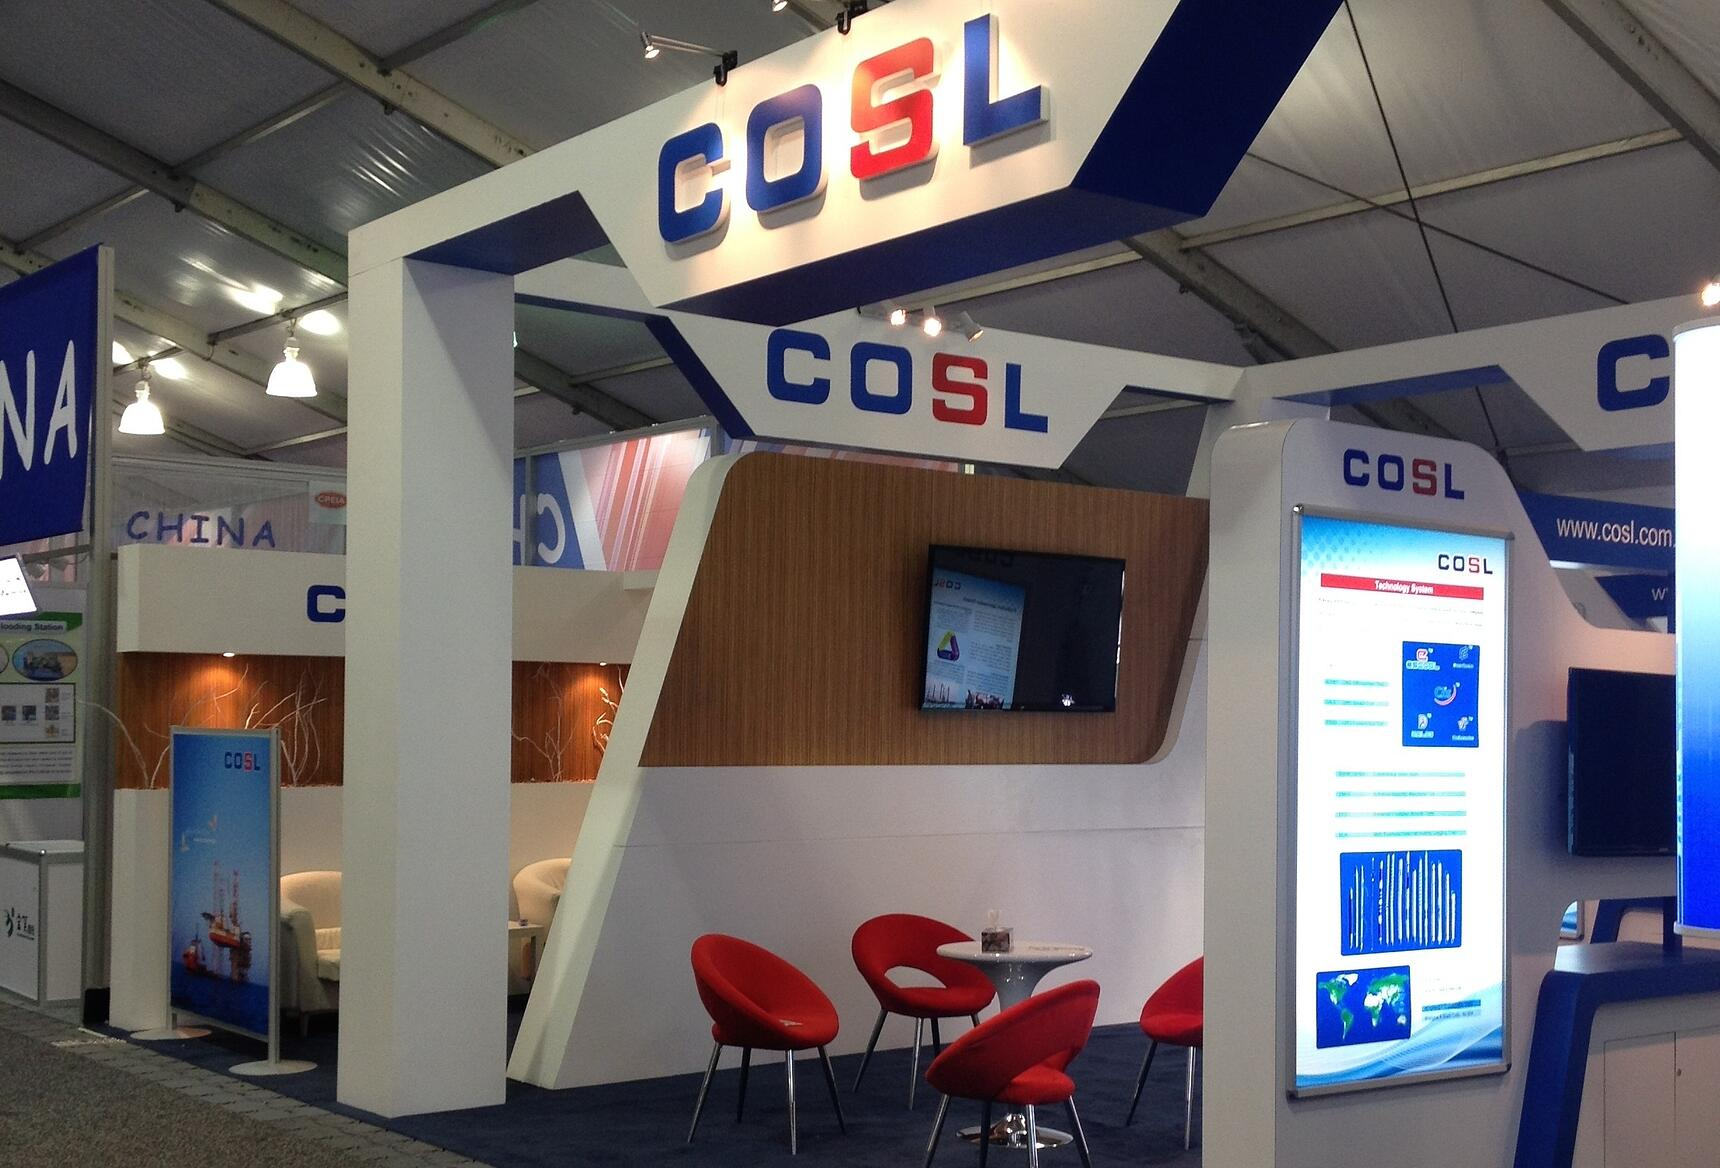 COSL custom exhibit with curved counters, lightboxes and 3D lettering.